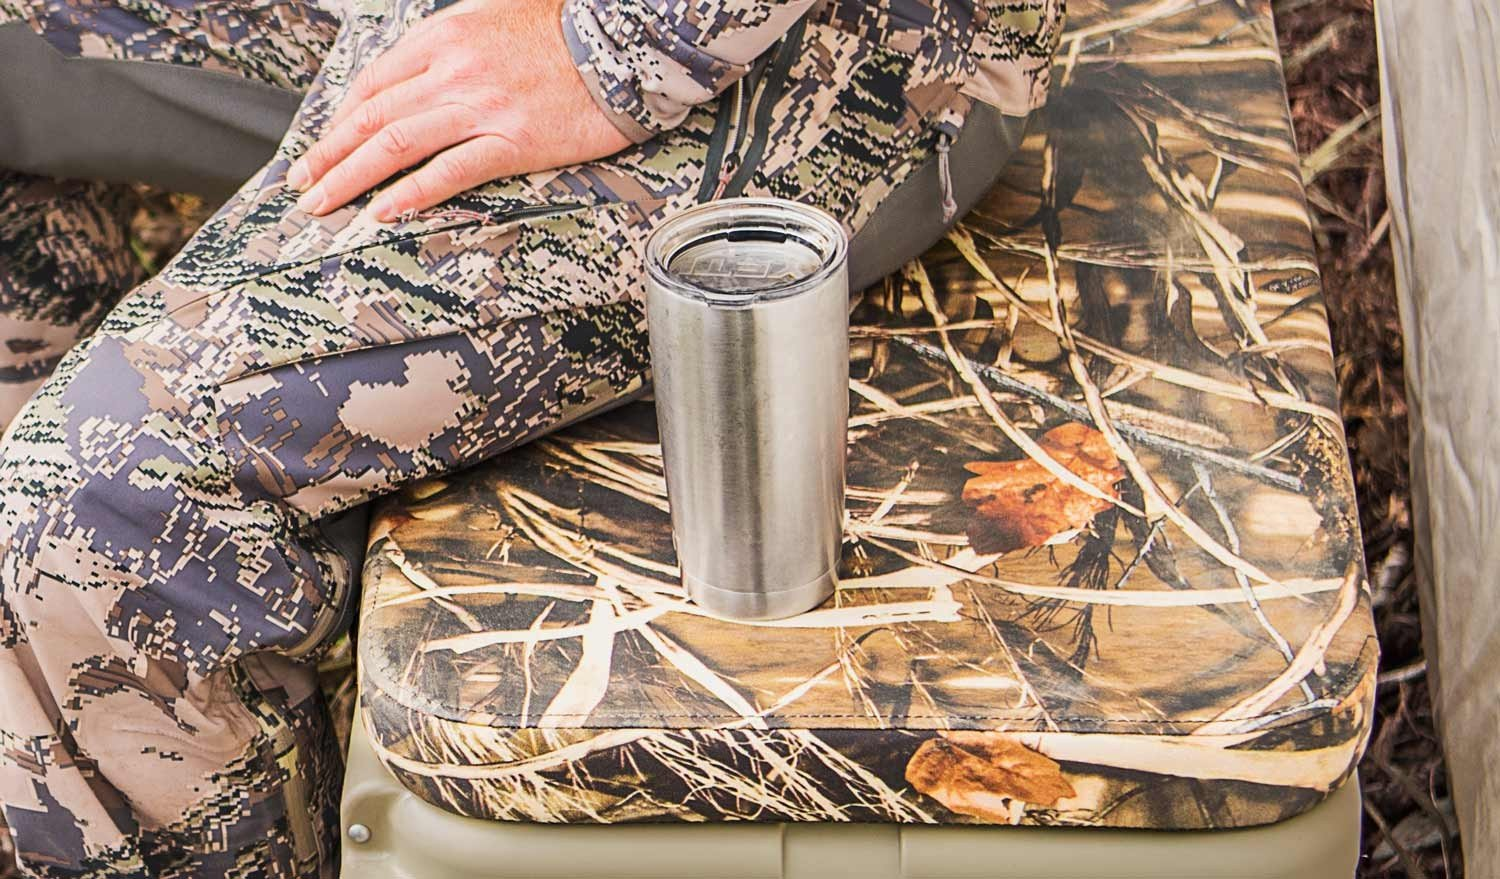 YETI Rambler 20 oz Stainless Steel Vacuum Insulated Tumbler with Lid (Stainless Steel) by YETI (Image #7)